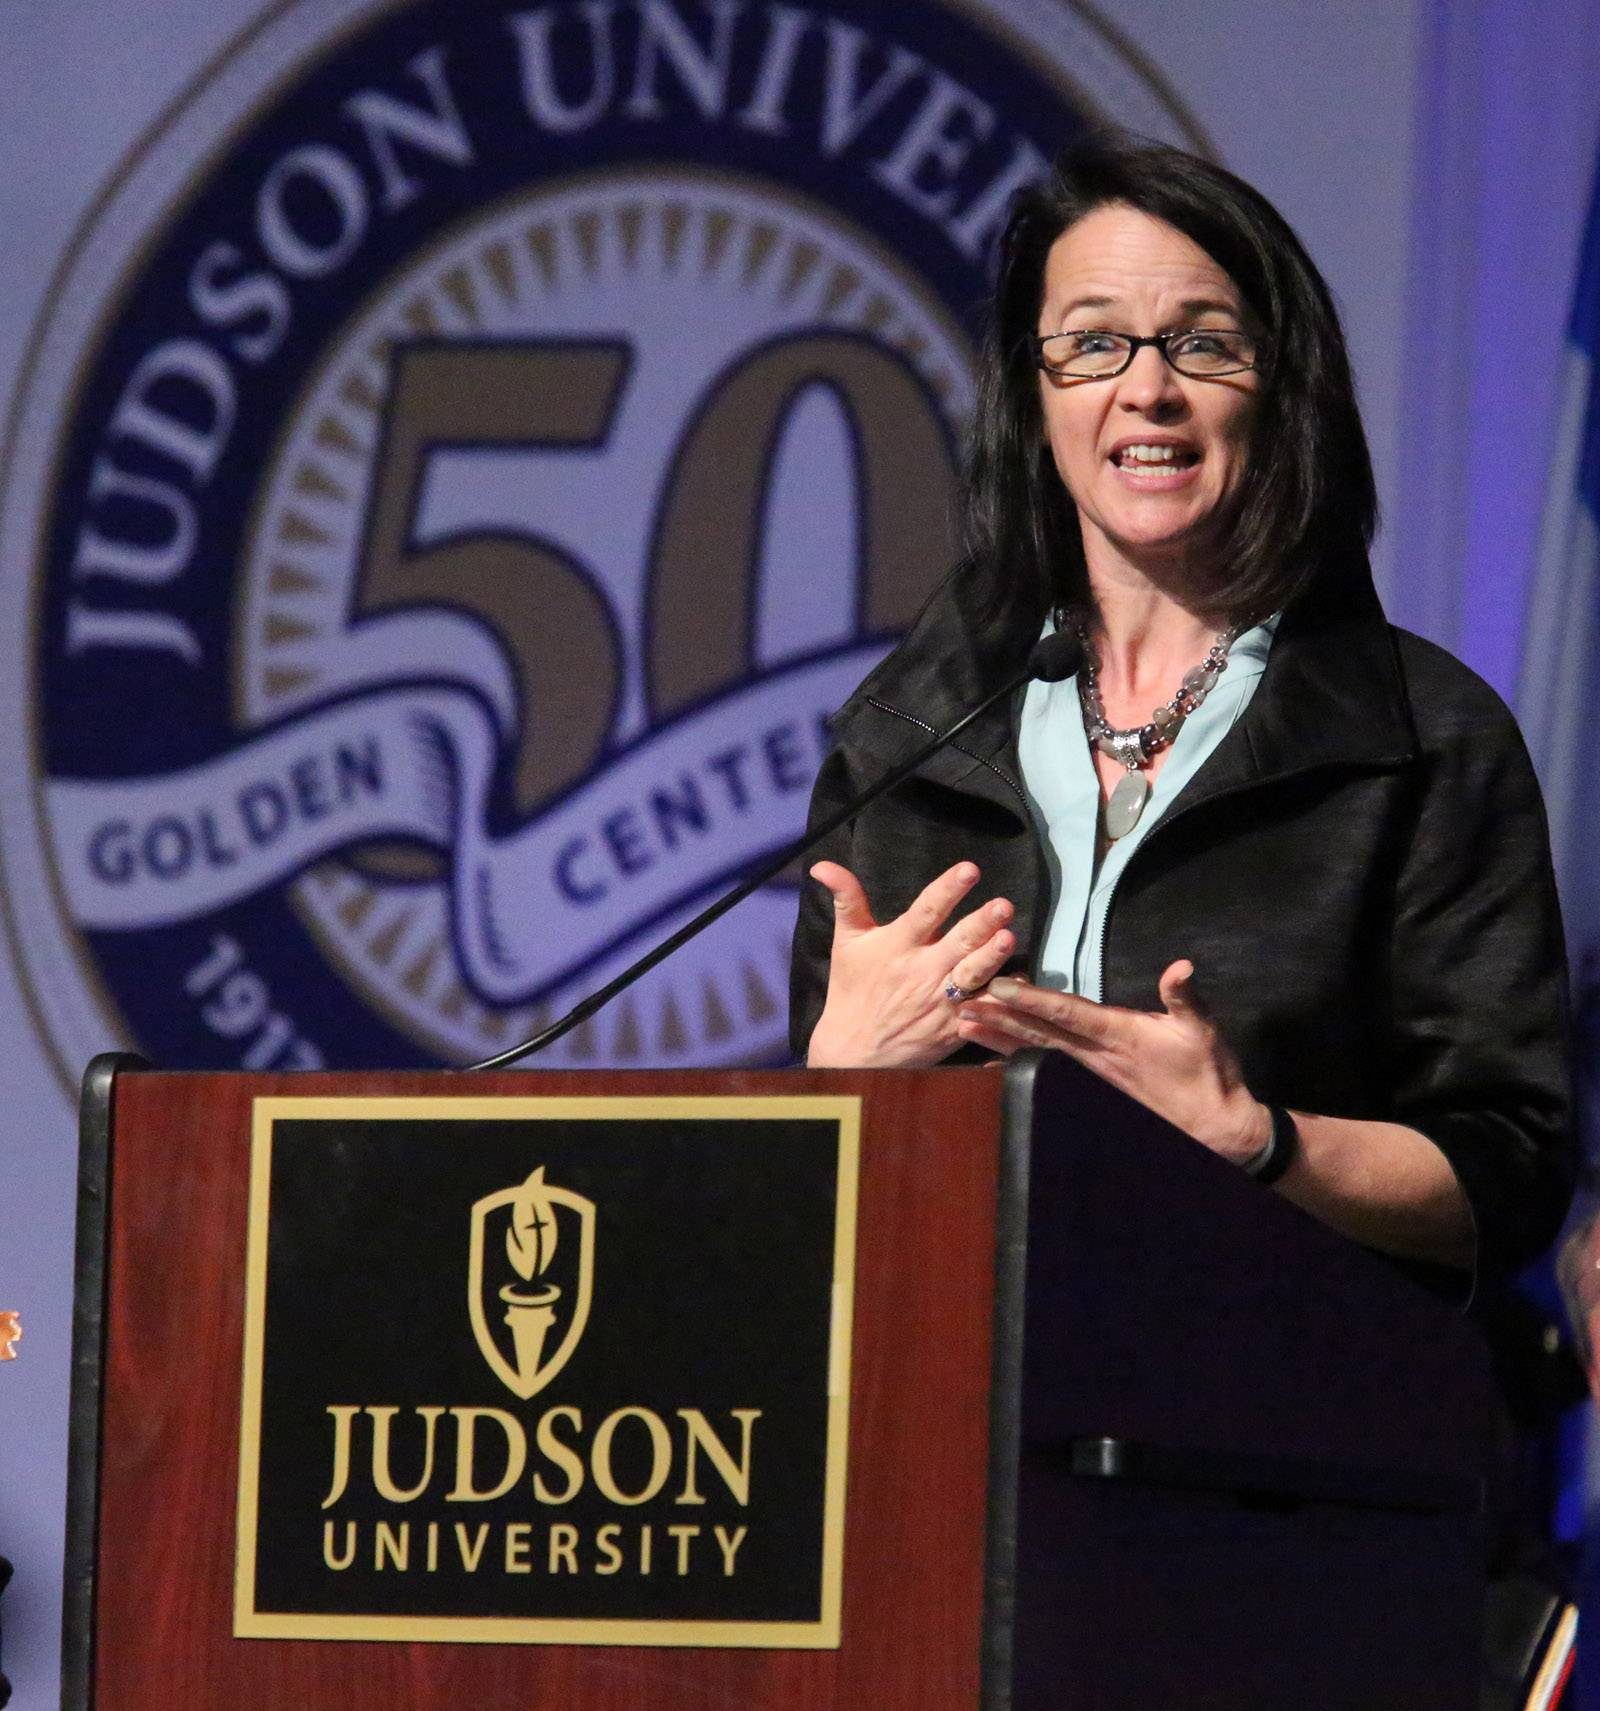 Author Mindy Caliguire delivers the keynote address to graduates at Judson University's golden centennial commencement on Saturday in Elgin.